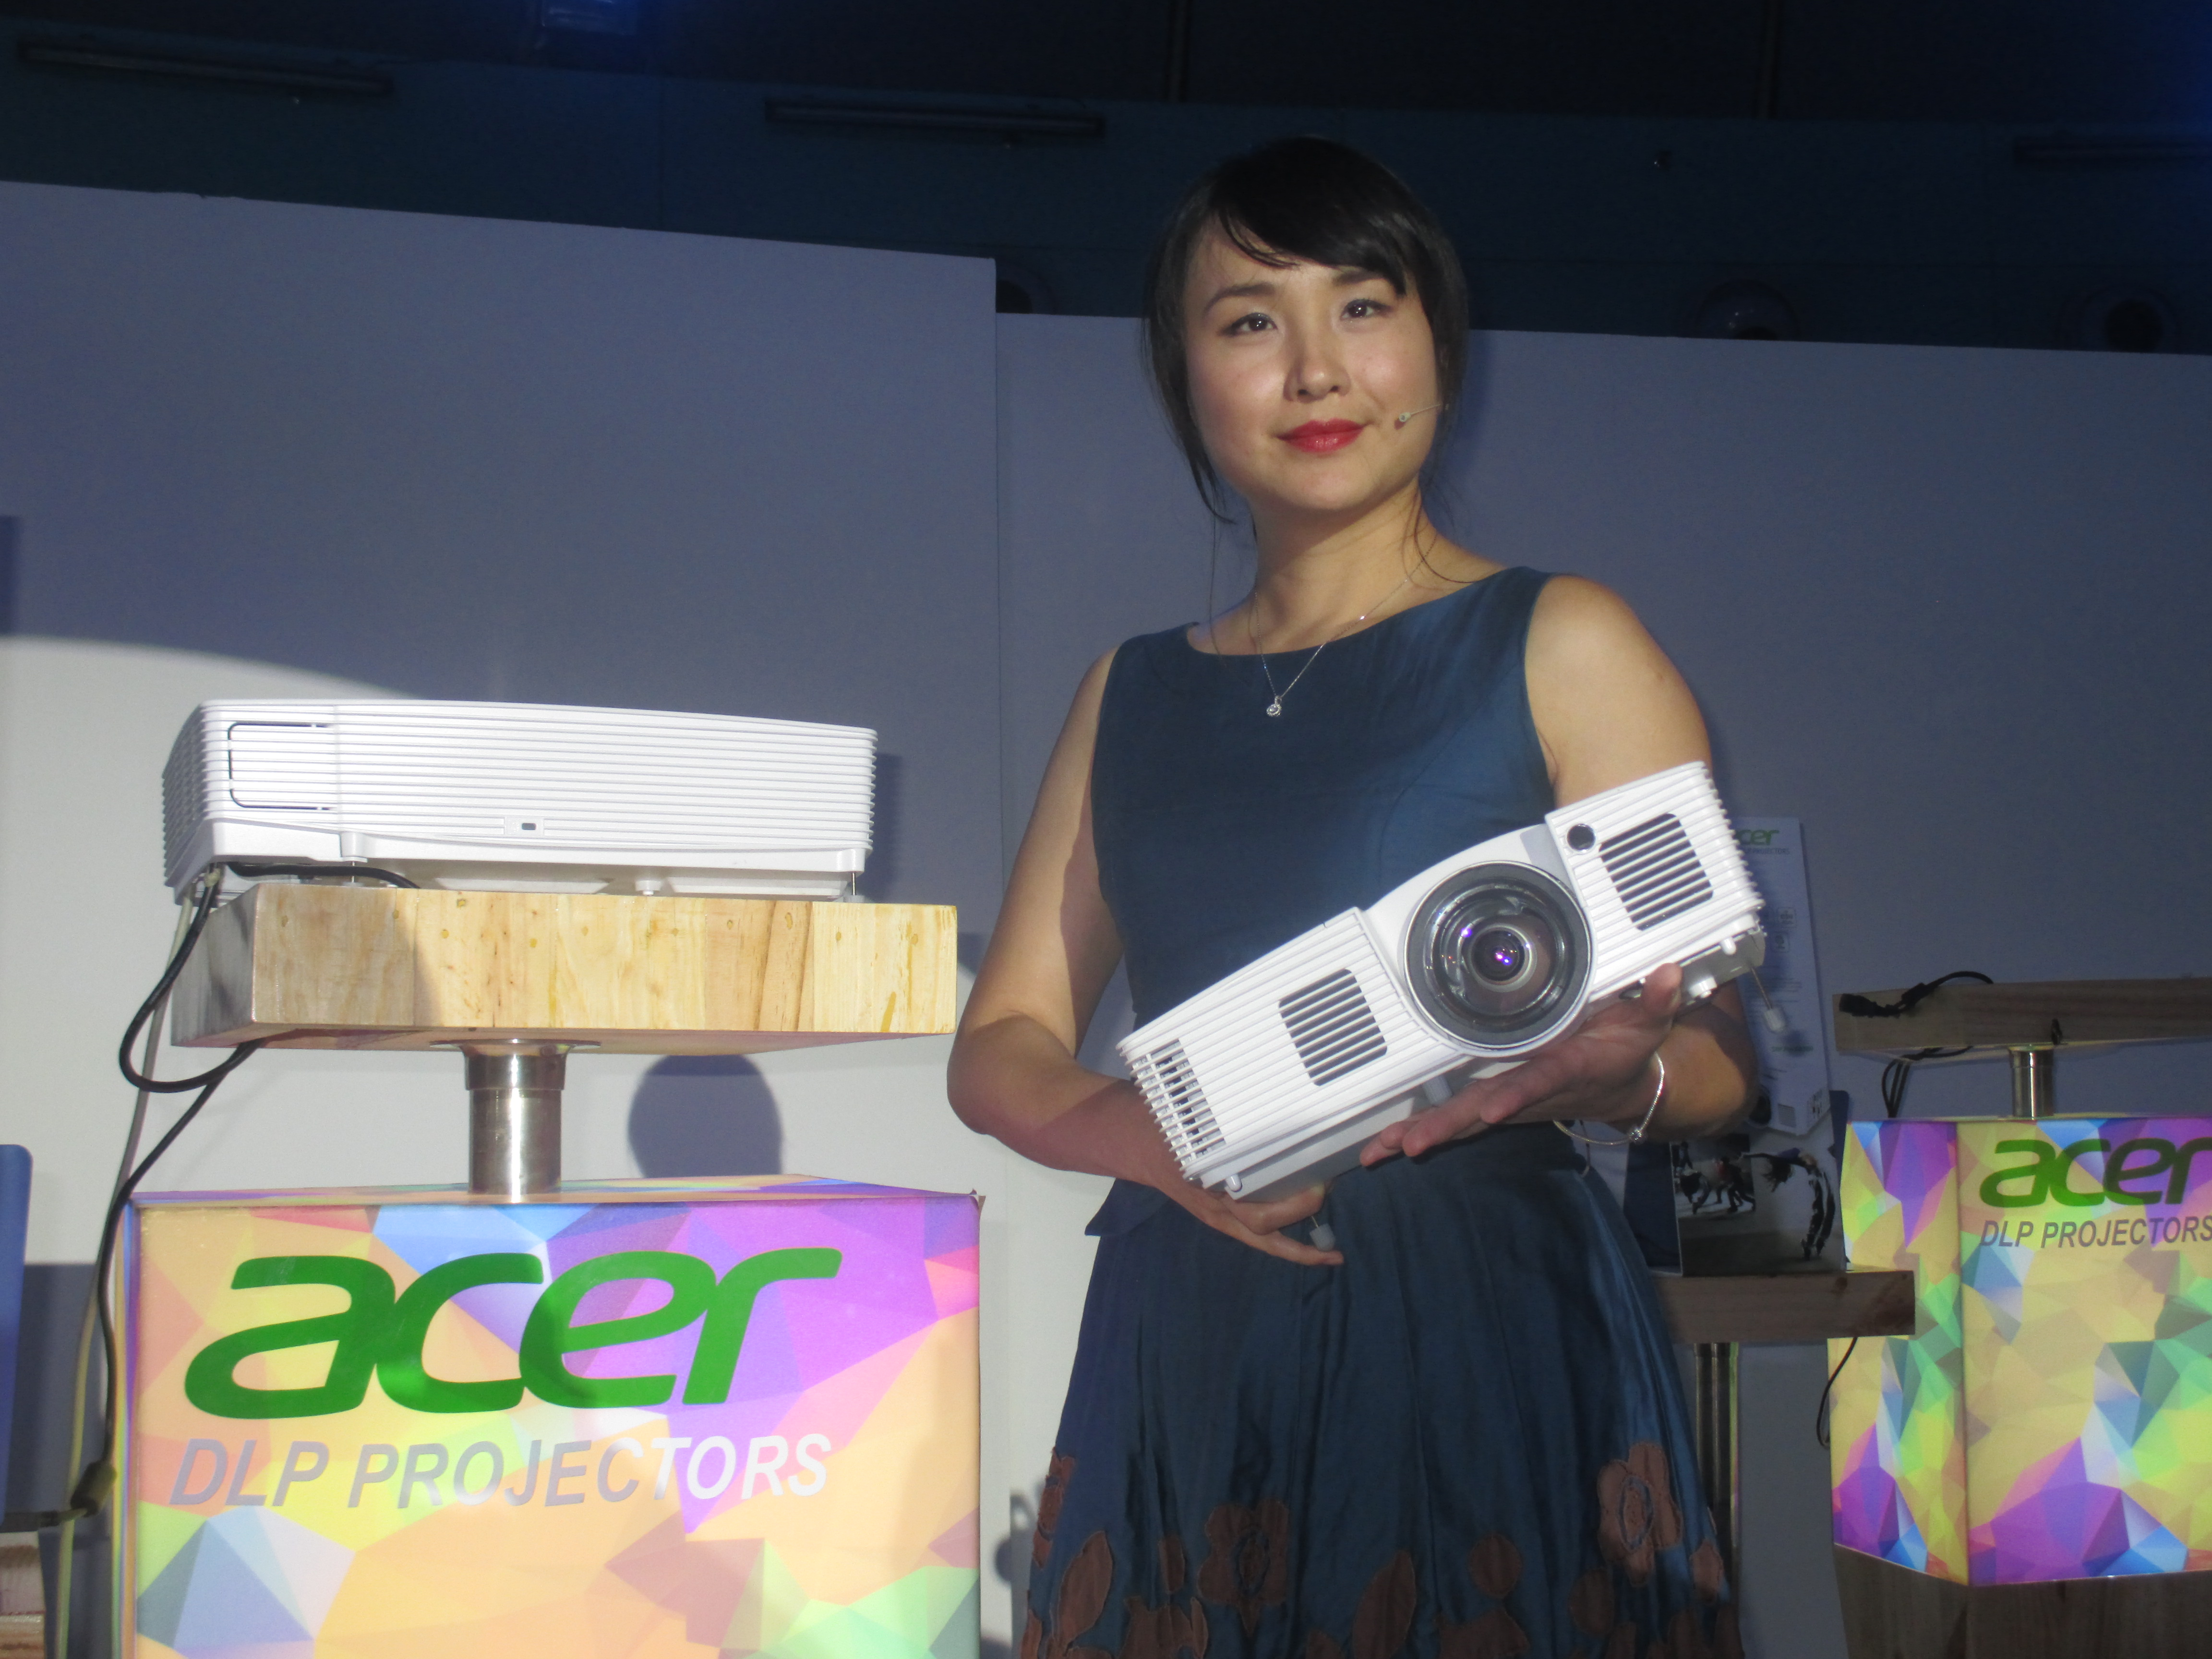 Business Manager for Projectors of Acer's Digital Display Business Unit Faith Kuo.